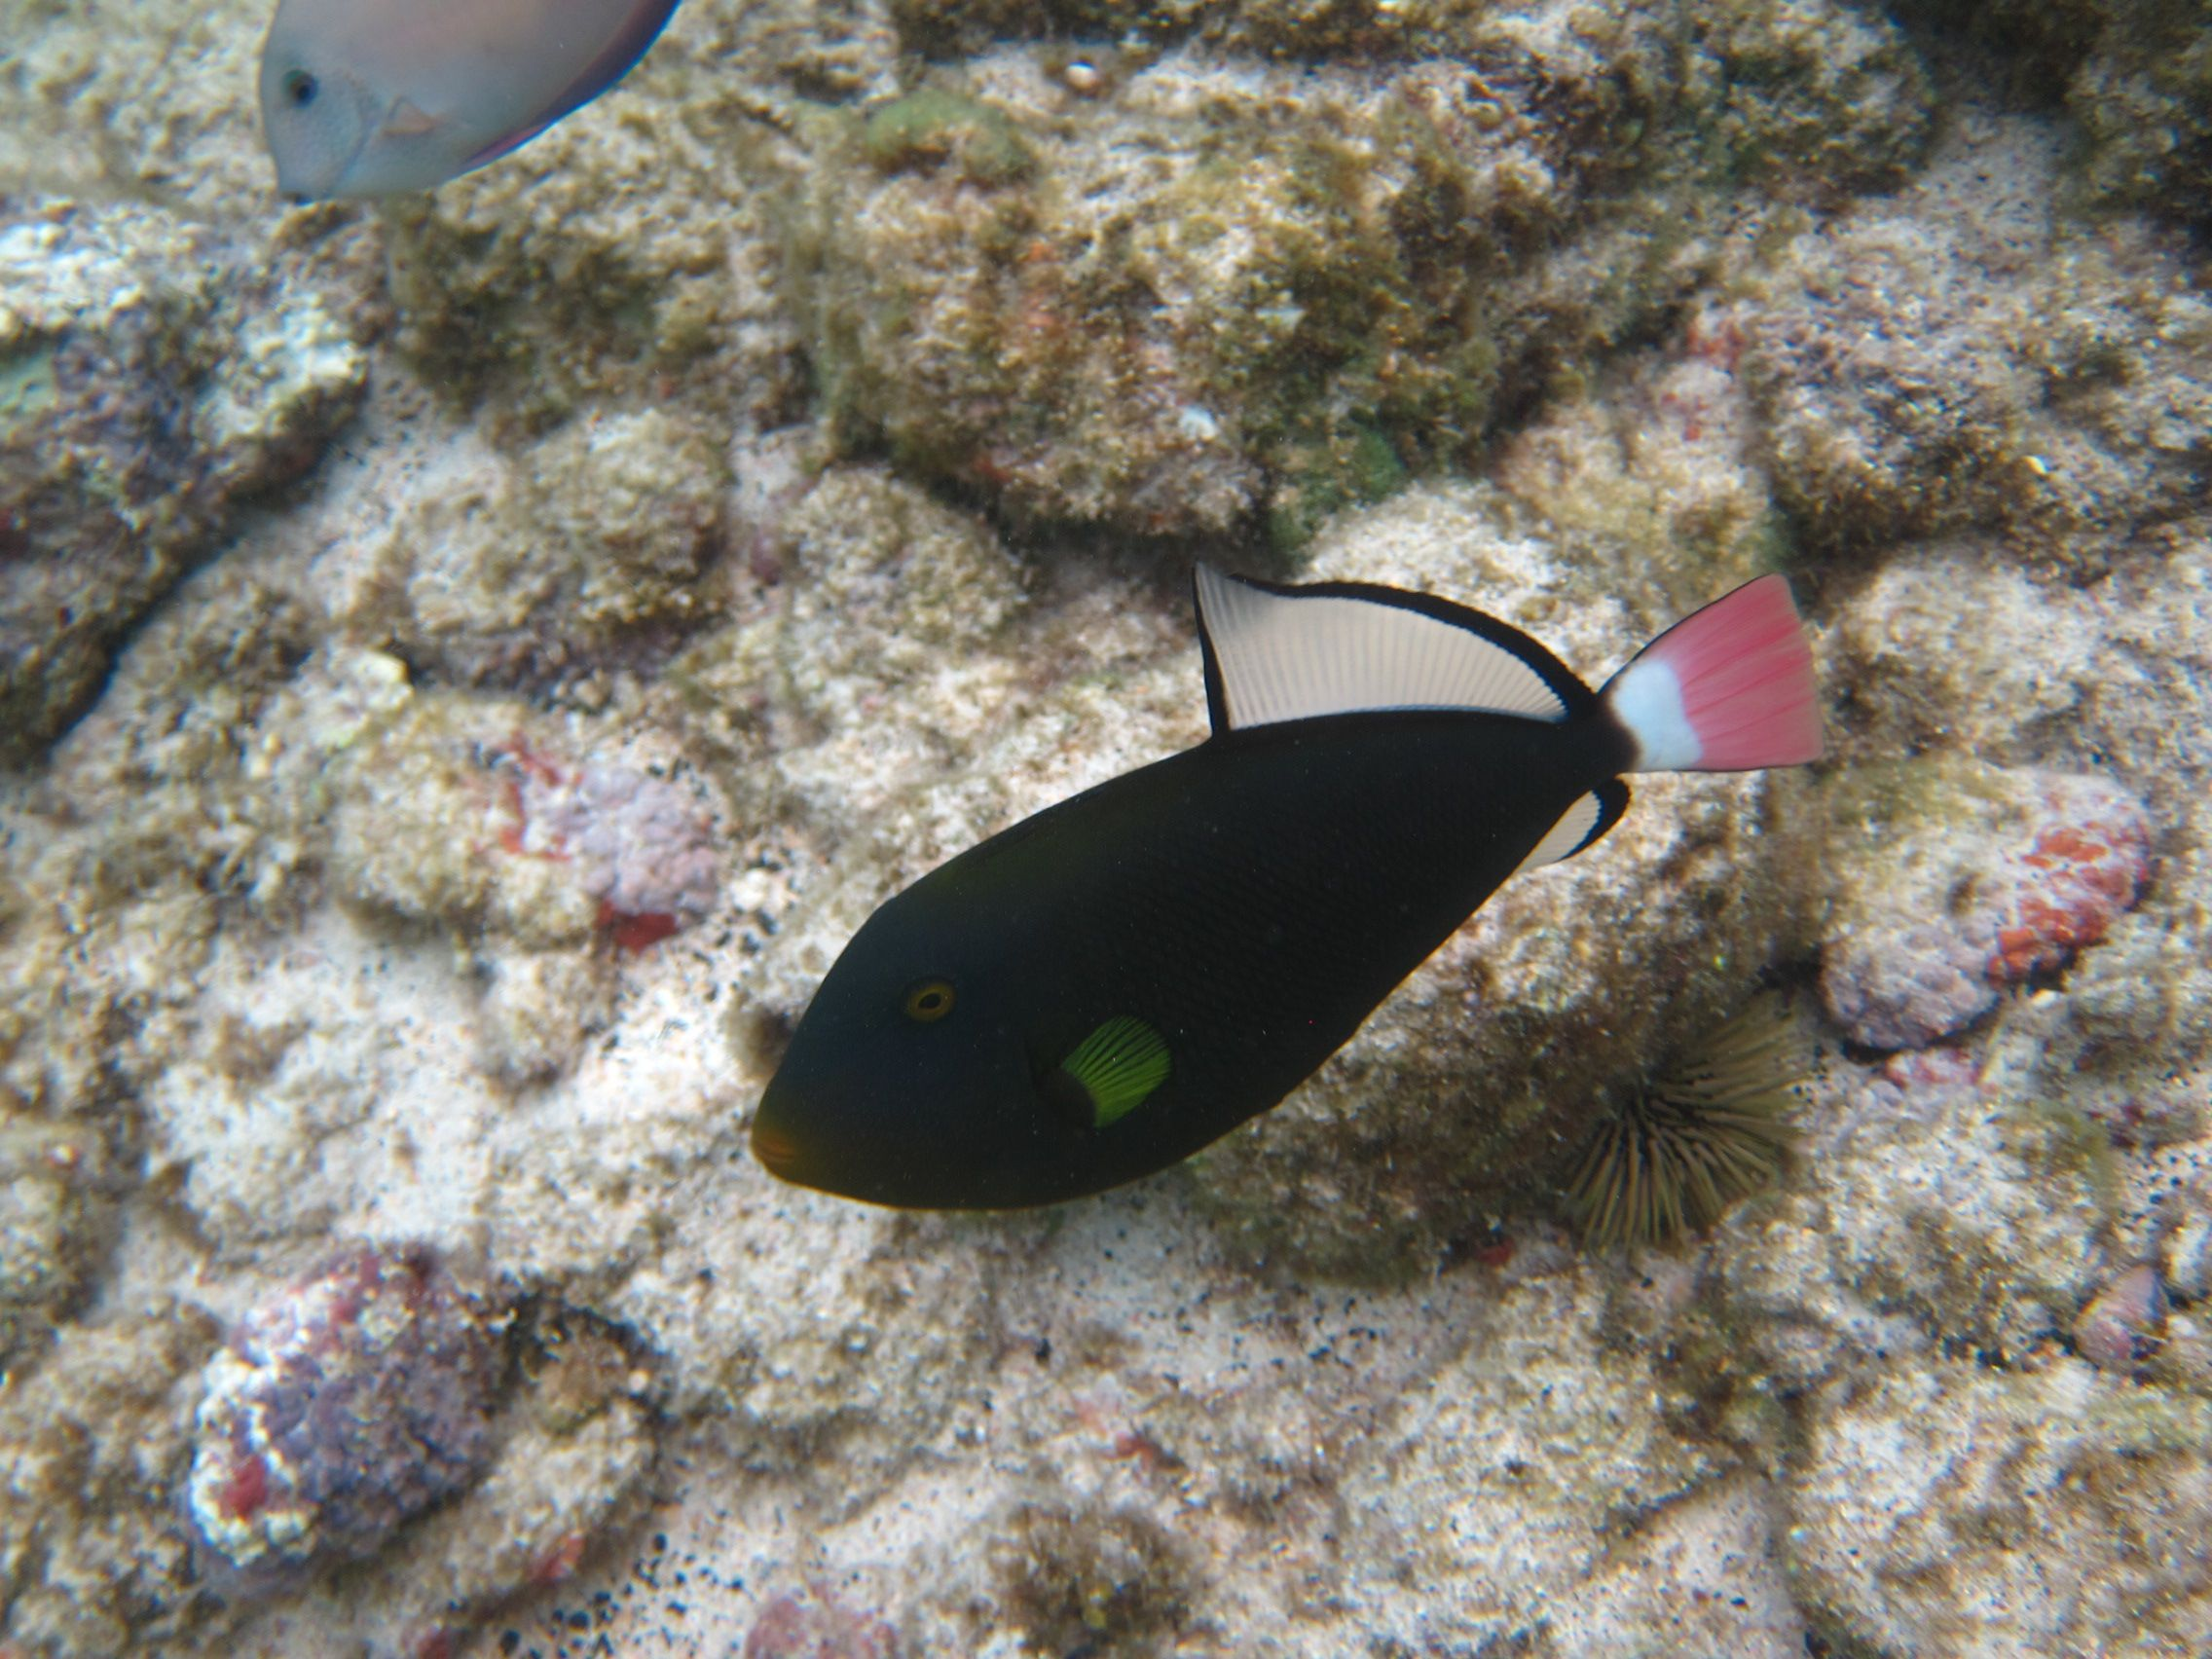 Pink Tail Triggerfish Even Though It Appears Black It Is Really Very Dark Green Beautiful Fish Underwater World Beautiful